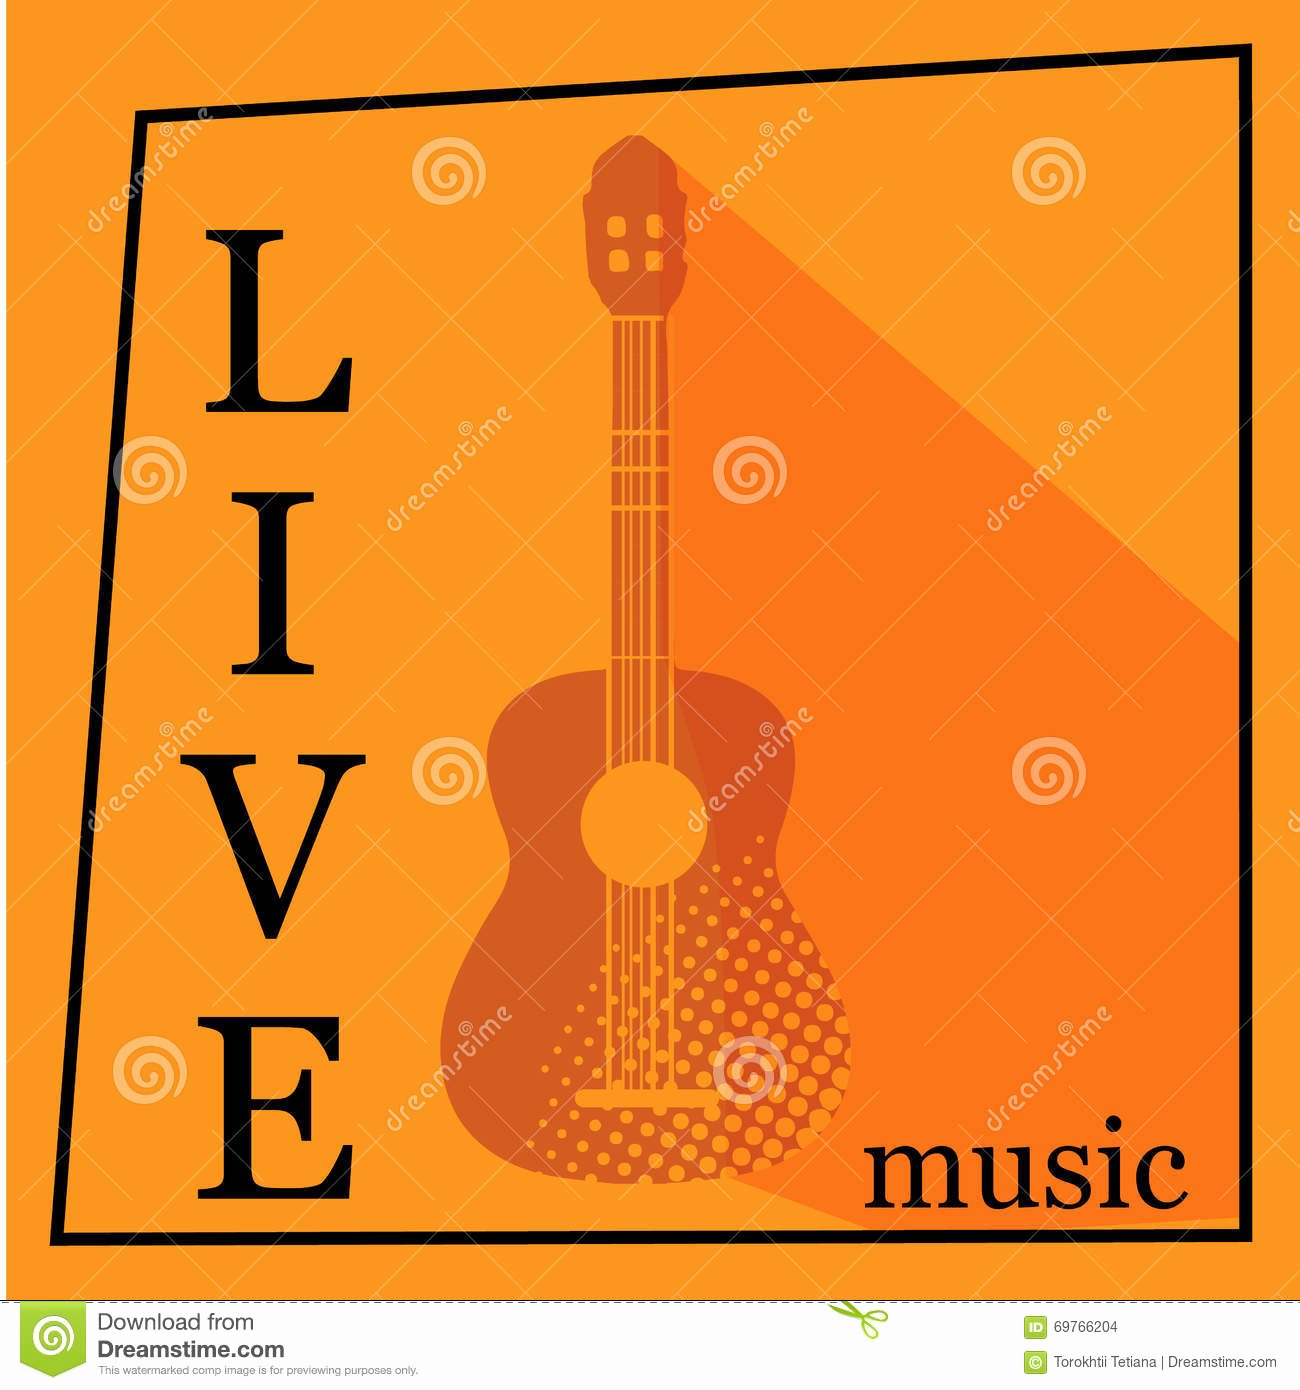 Free Concert Poster Templates Luxury Live Music Vector Poster Template Stock Image